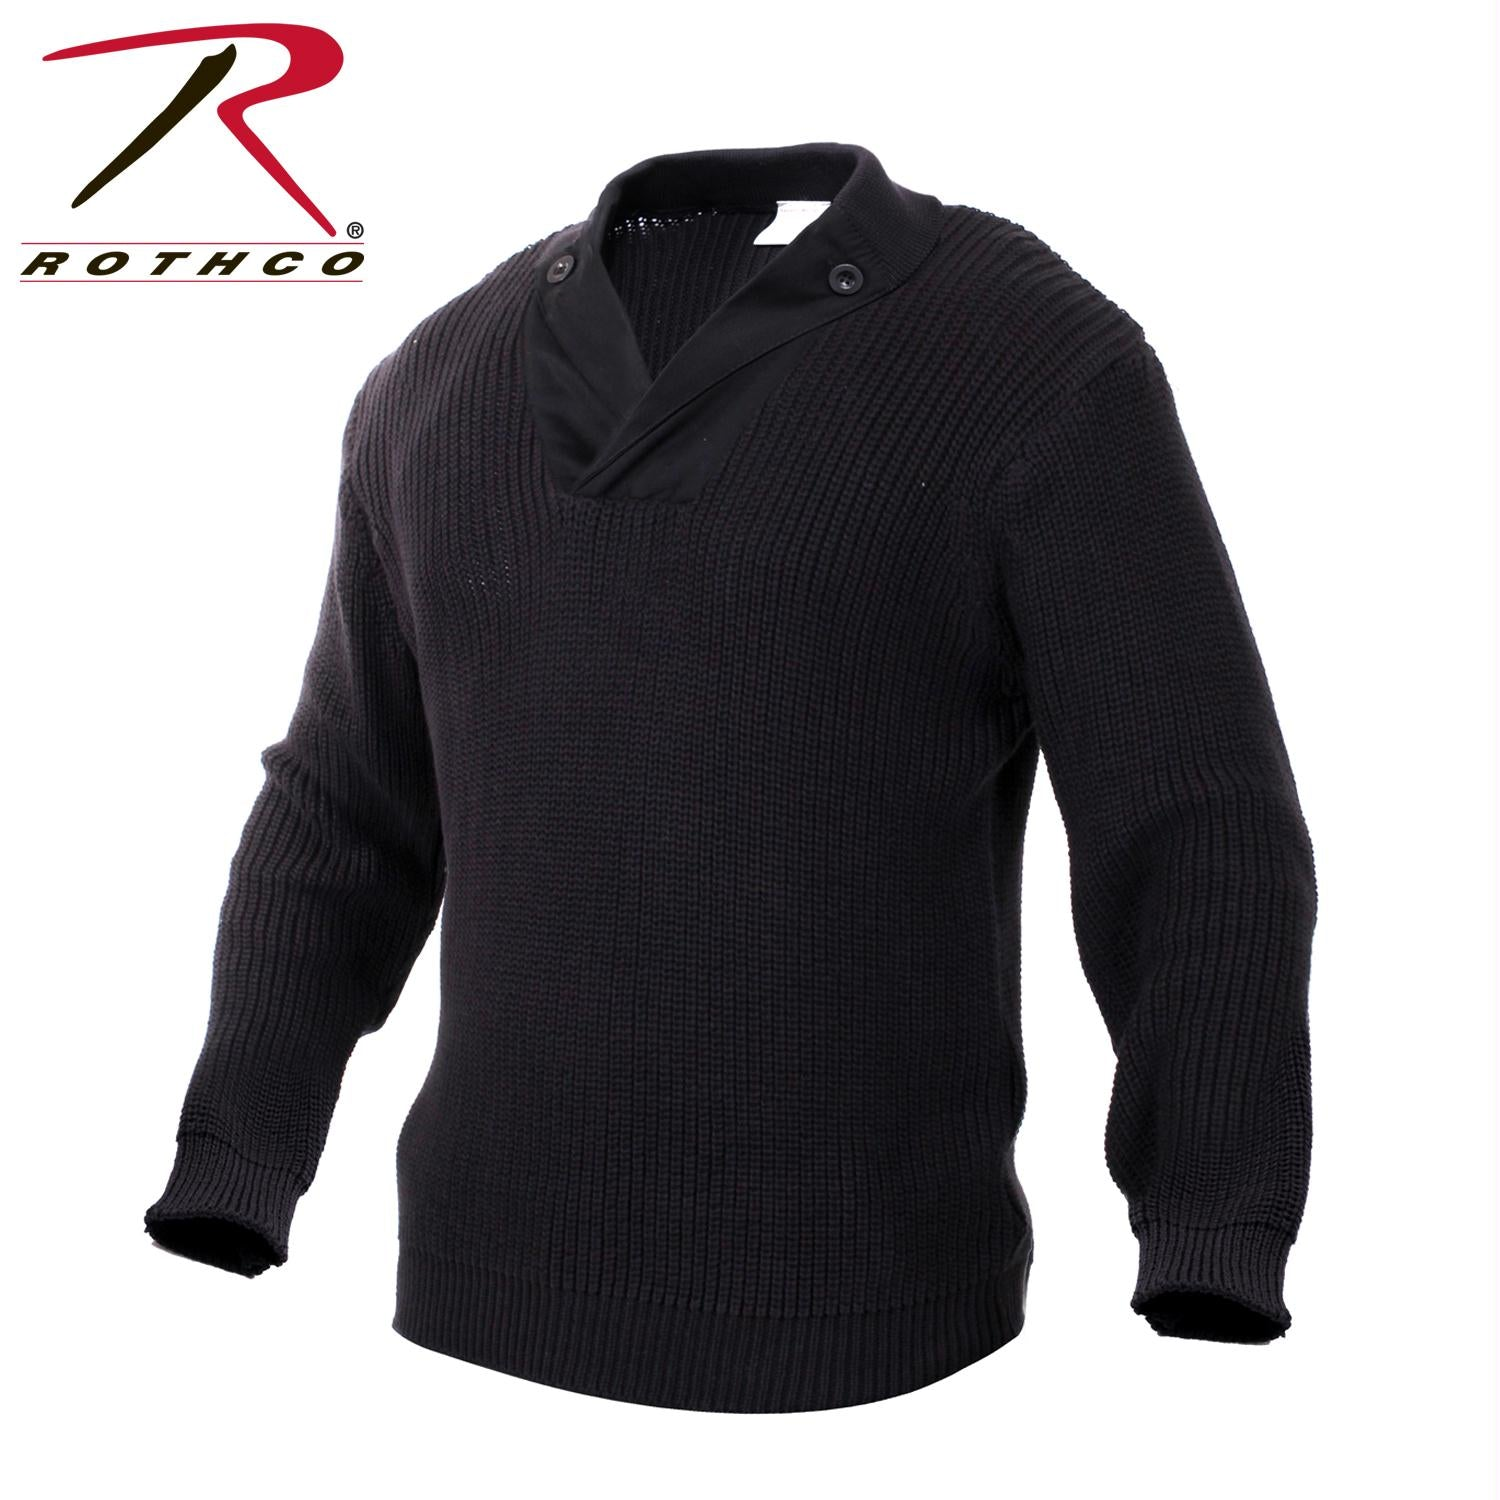 Rothco WWII Vintage Mechanics Sweater - Black / S